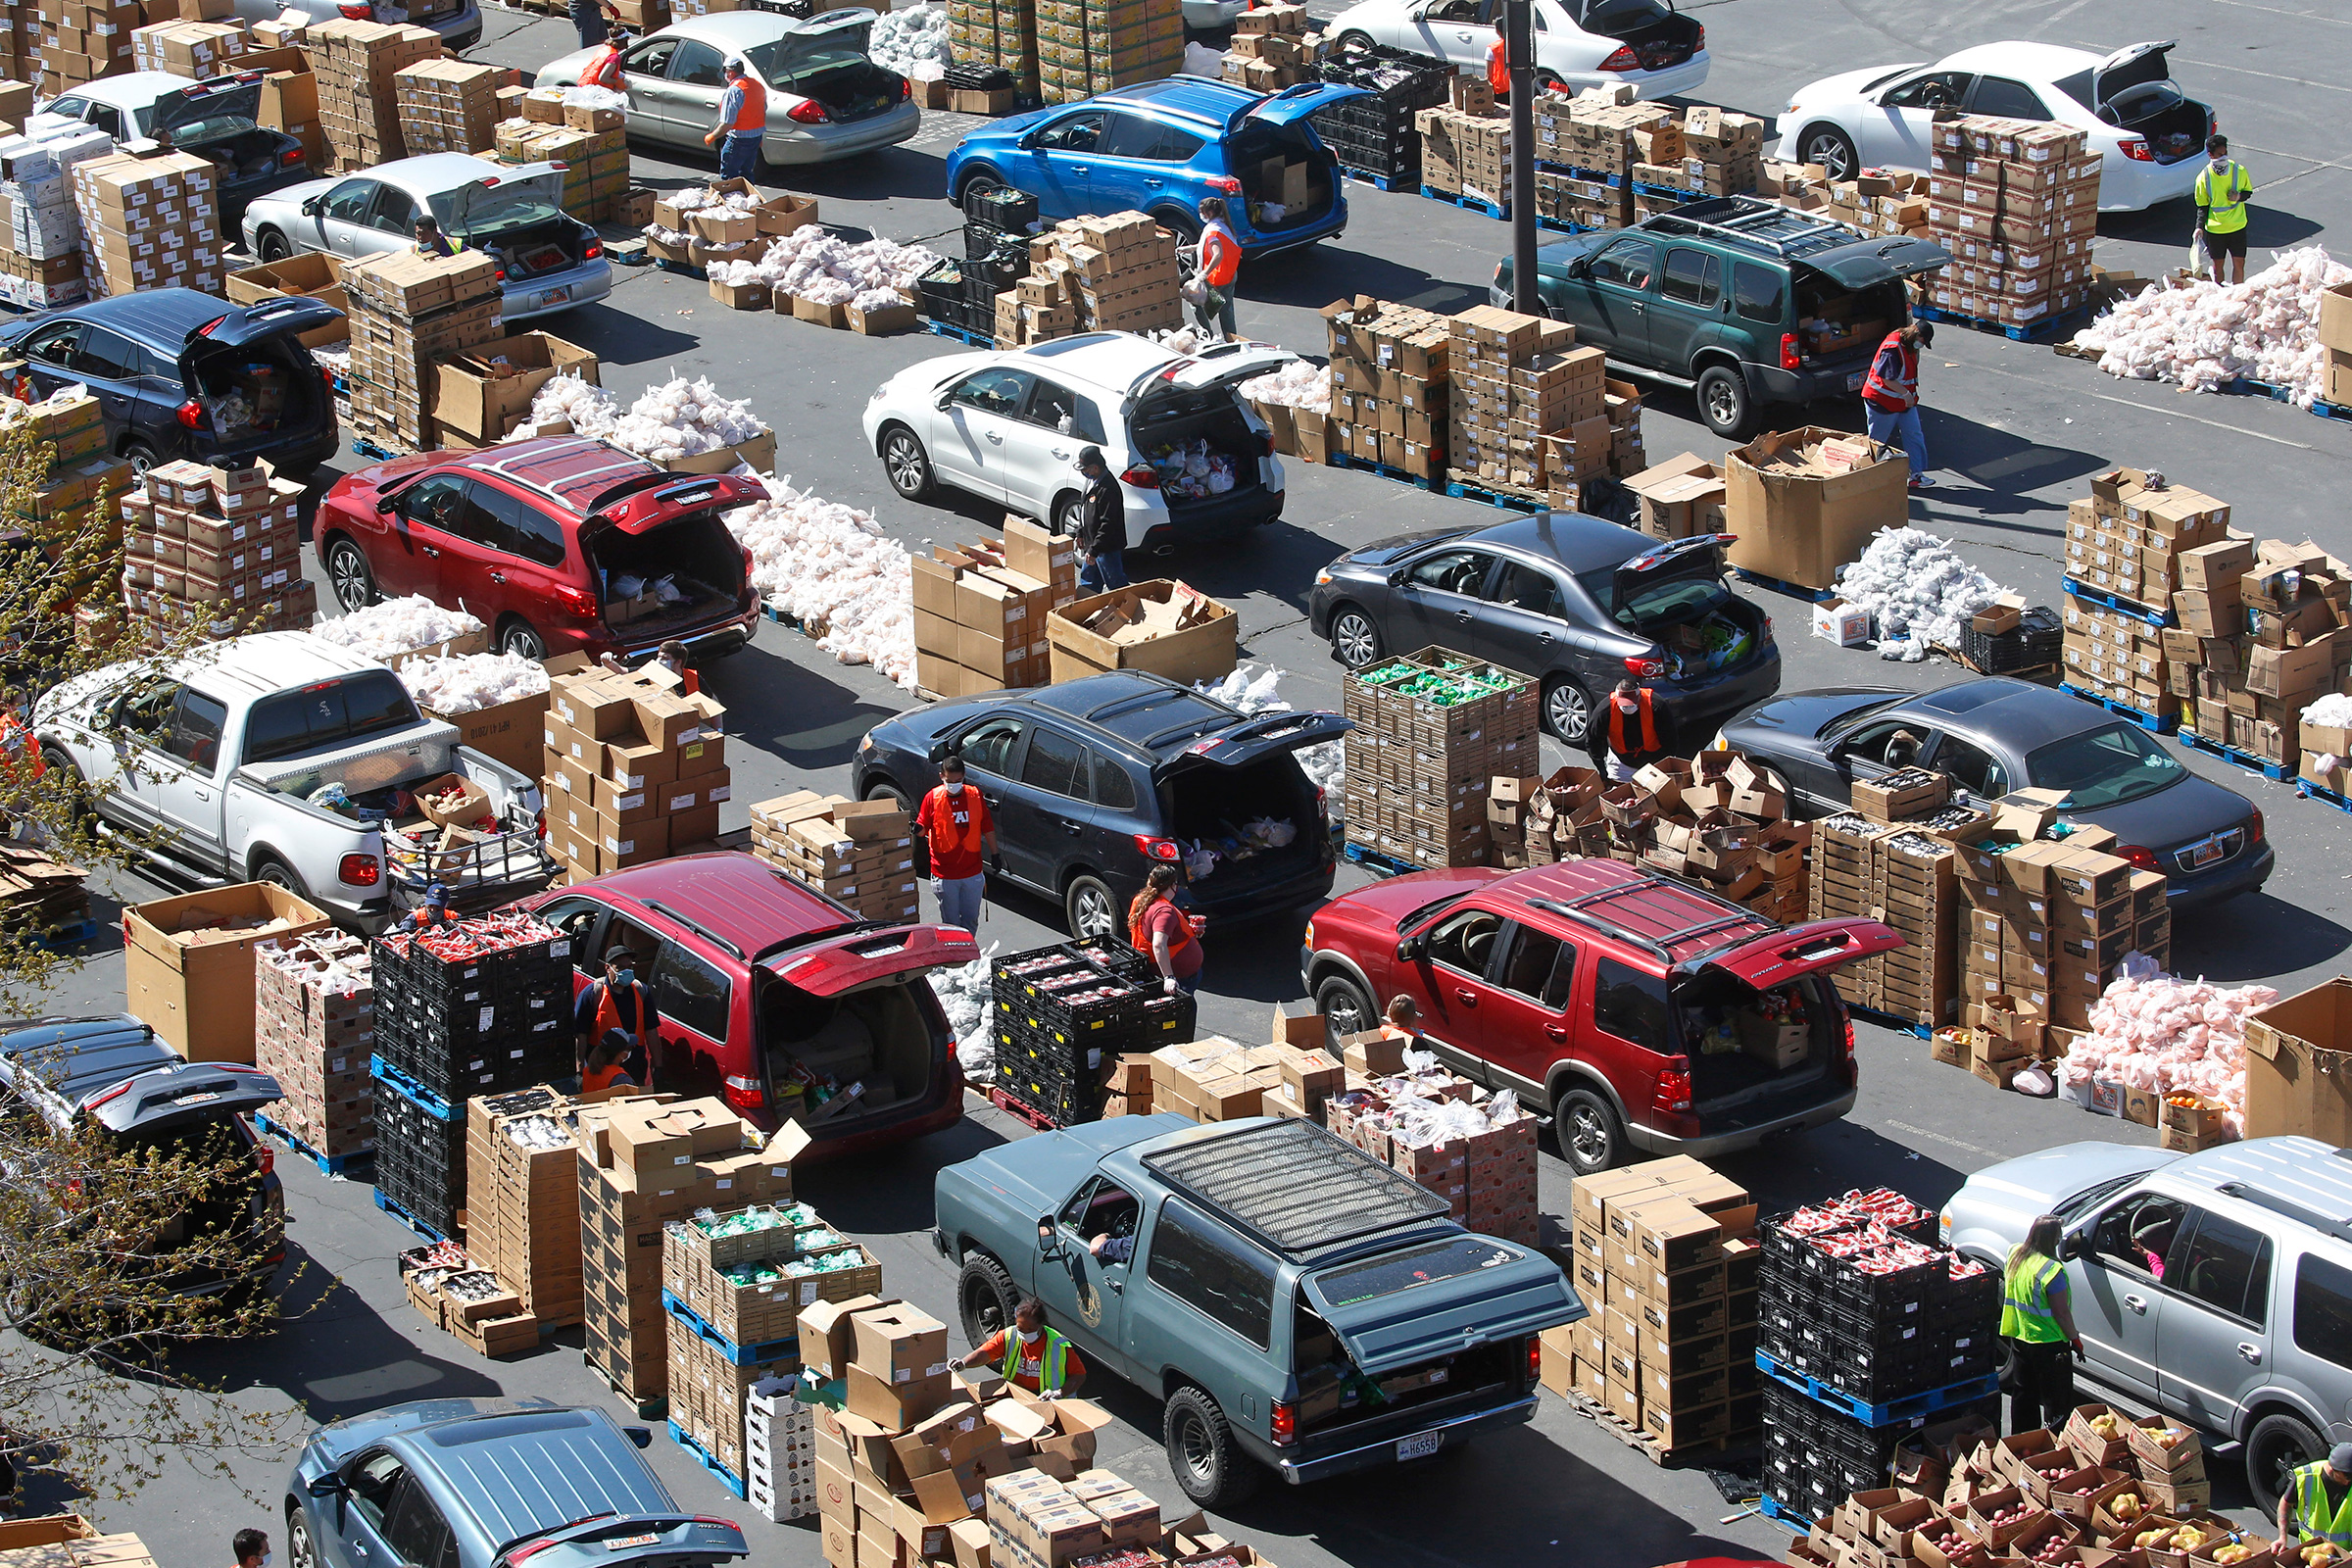 Cars line up at the Utah Food Bank's mobile food pantry in West Valley City on April 24.